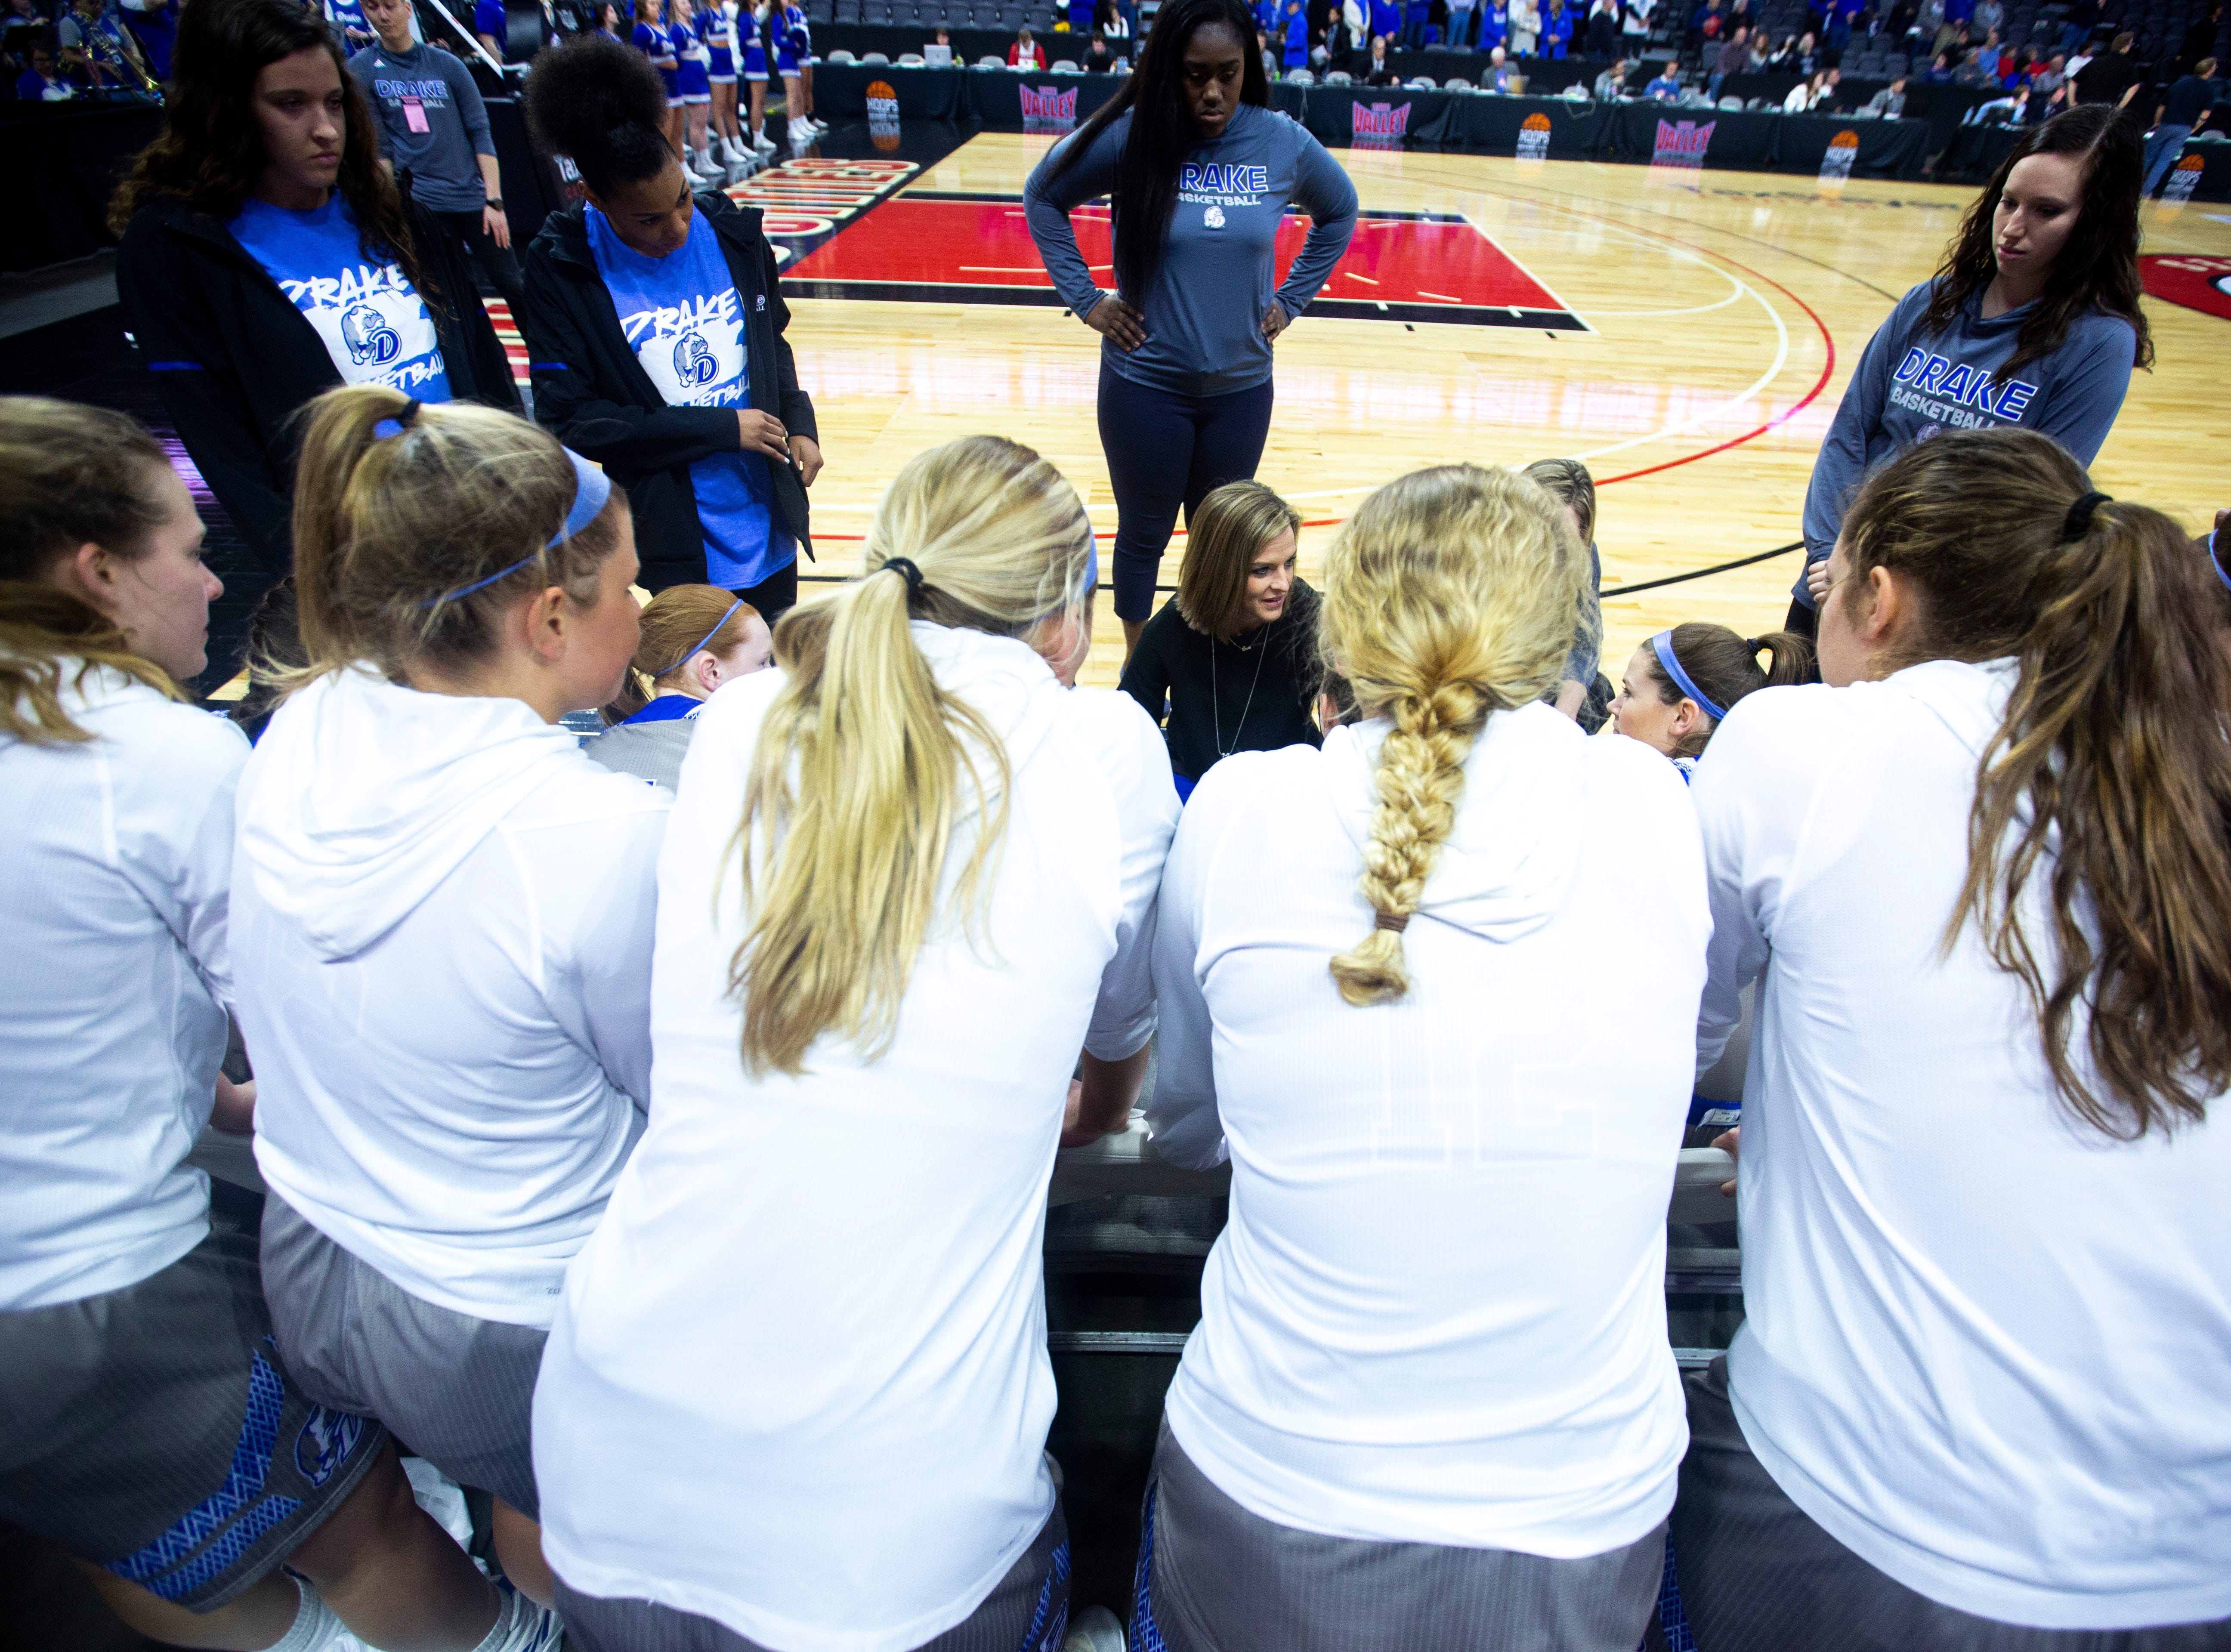 Drake head coach Jennie Baranczyk talks with players before a NCAA Missouri Valley Conference women's basketball quarterfinal tournament game, Friday, March 15, 2019, at the TaxSlayer Center in Moline, Illinois.